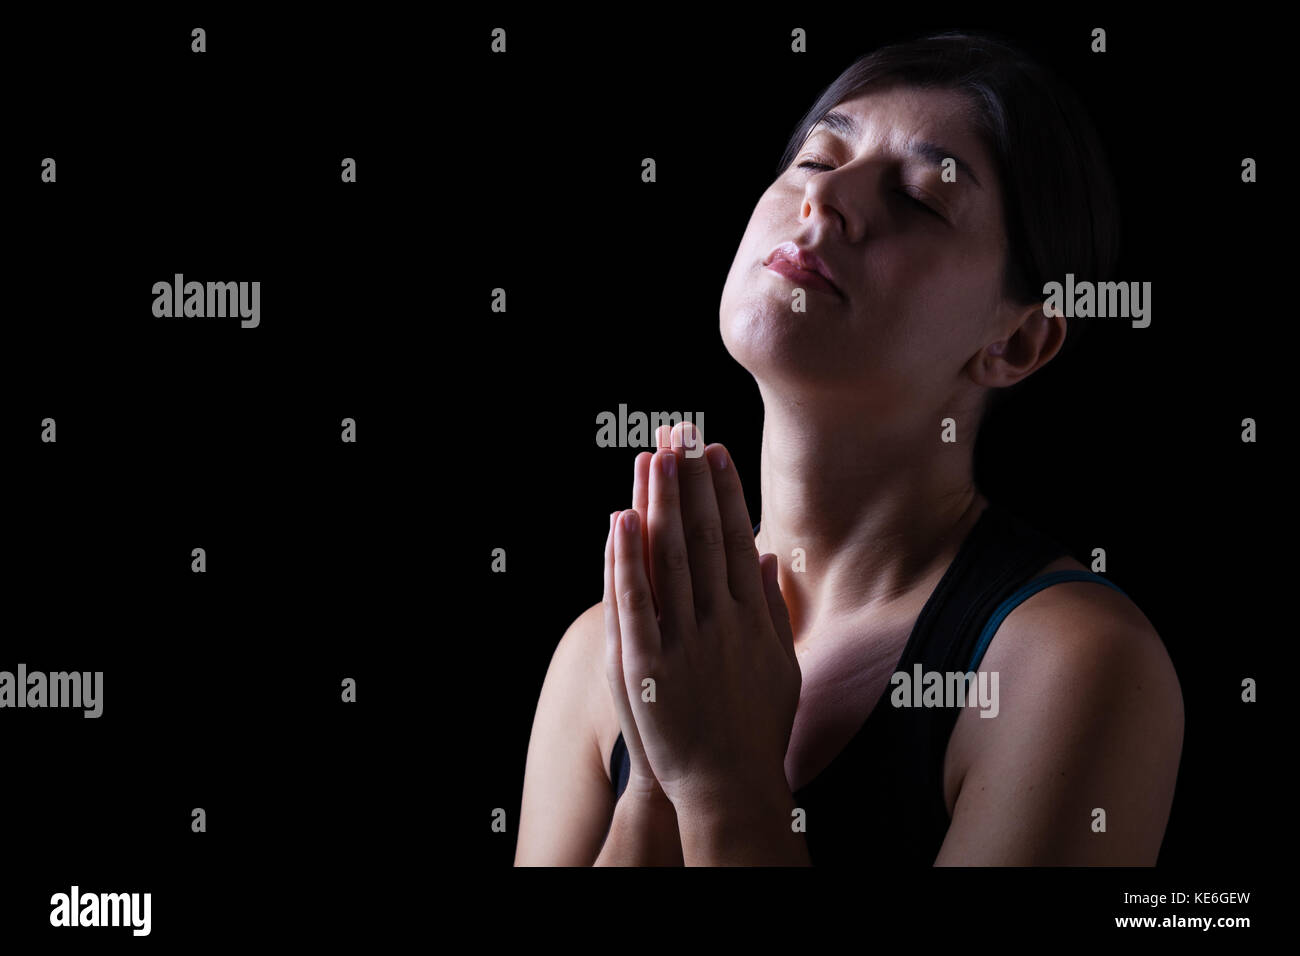 Faithful woman praying and feeling the presence or being touched by god. Hands folded in worship, head up and eyes - Stock Image